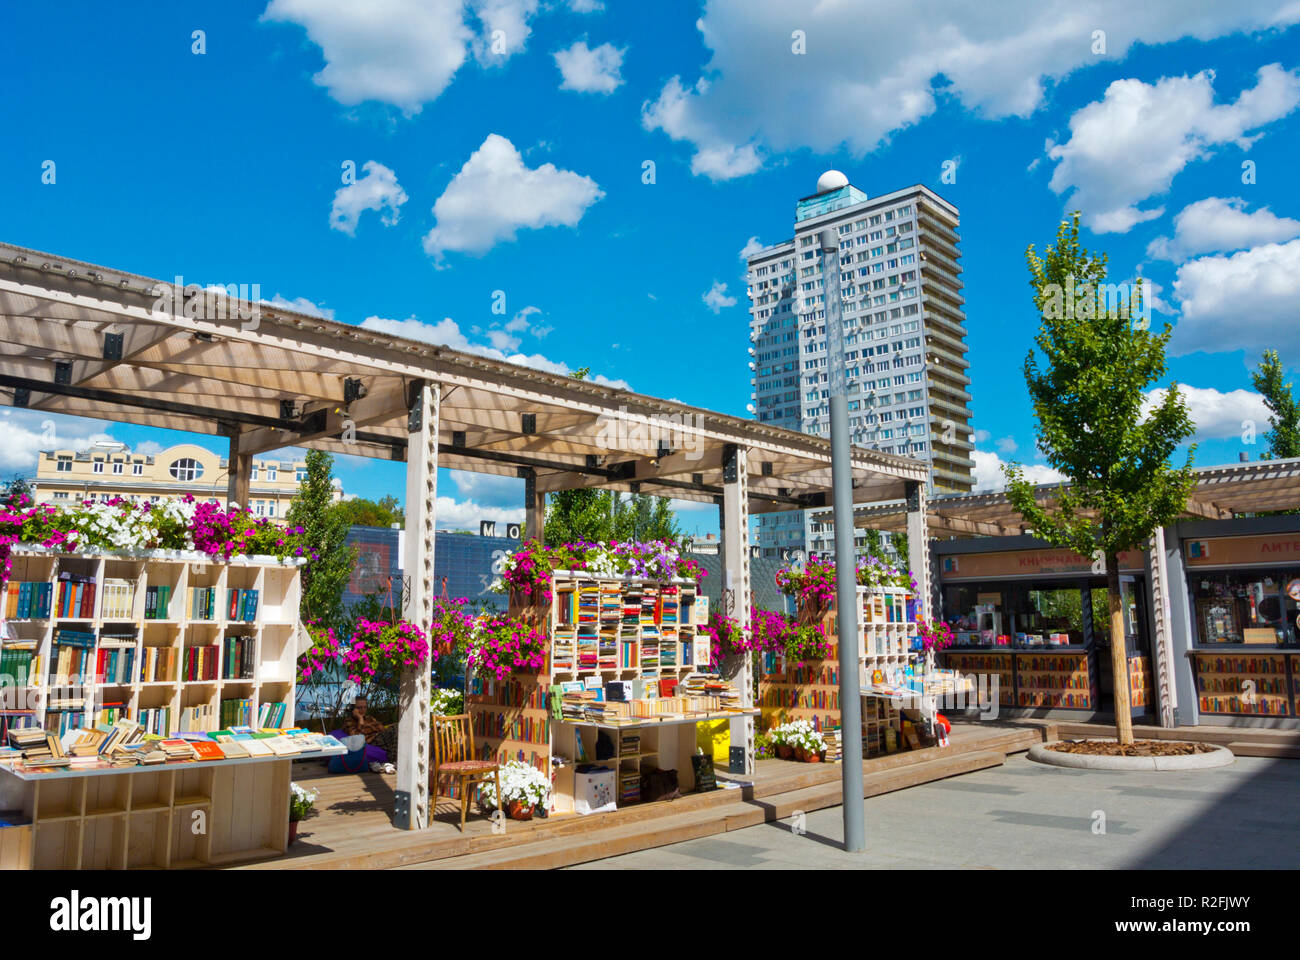 Book stalls, for Bukinist Book Festival, Novy Arbat, Moscow, Russia - Stock Image